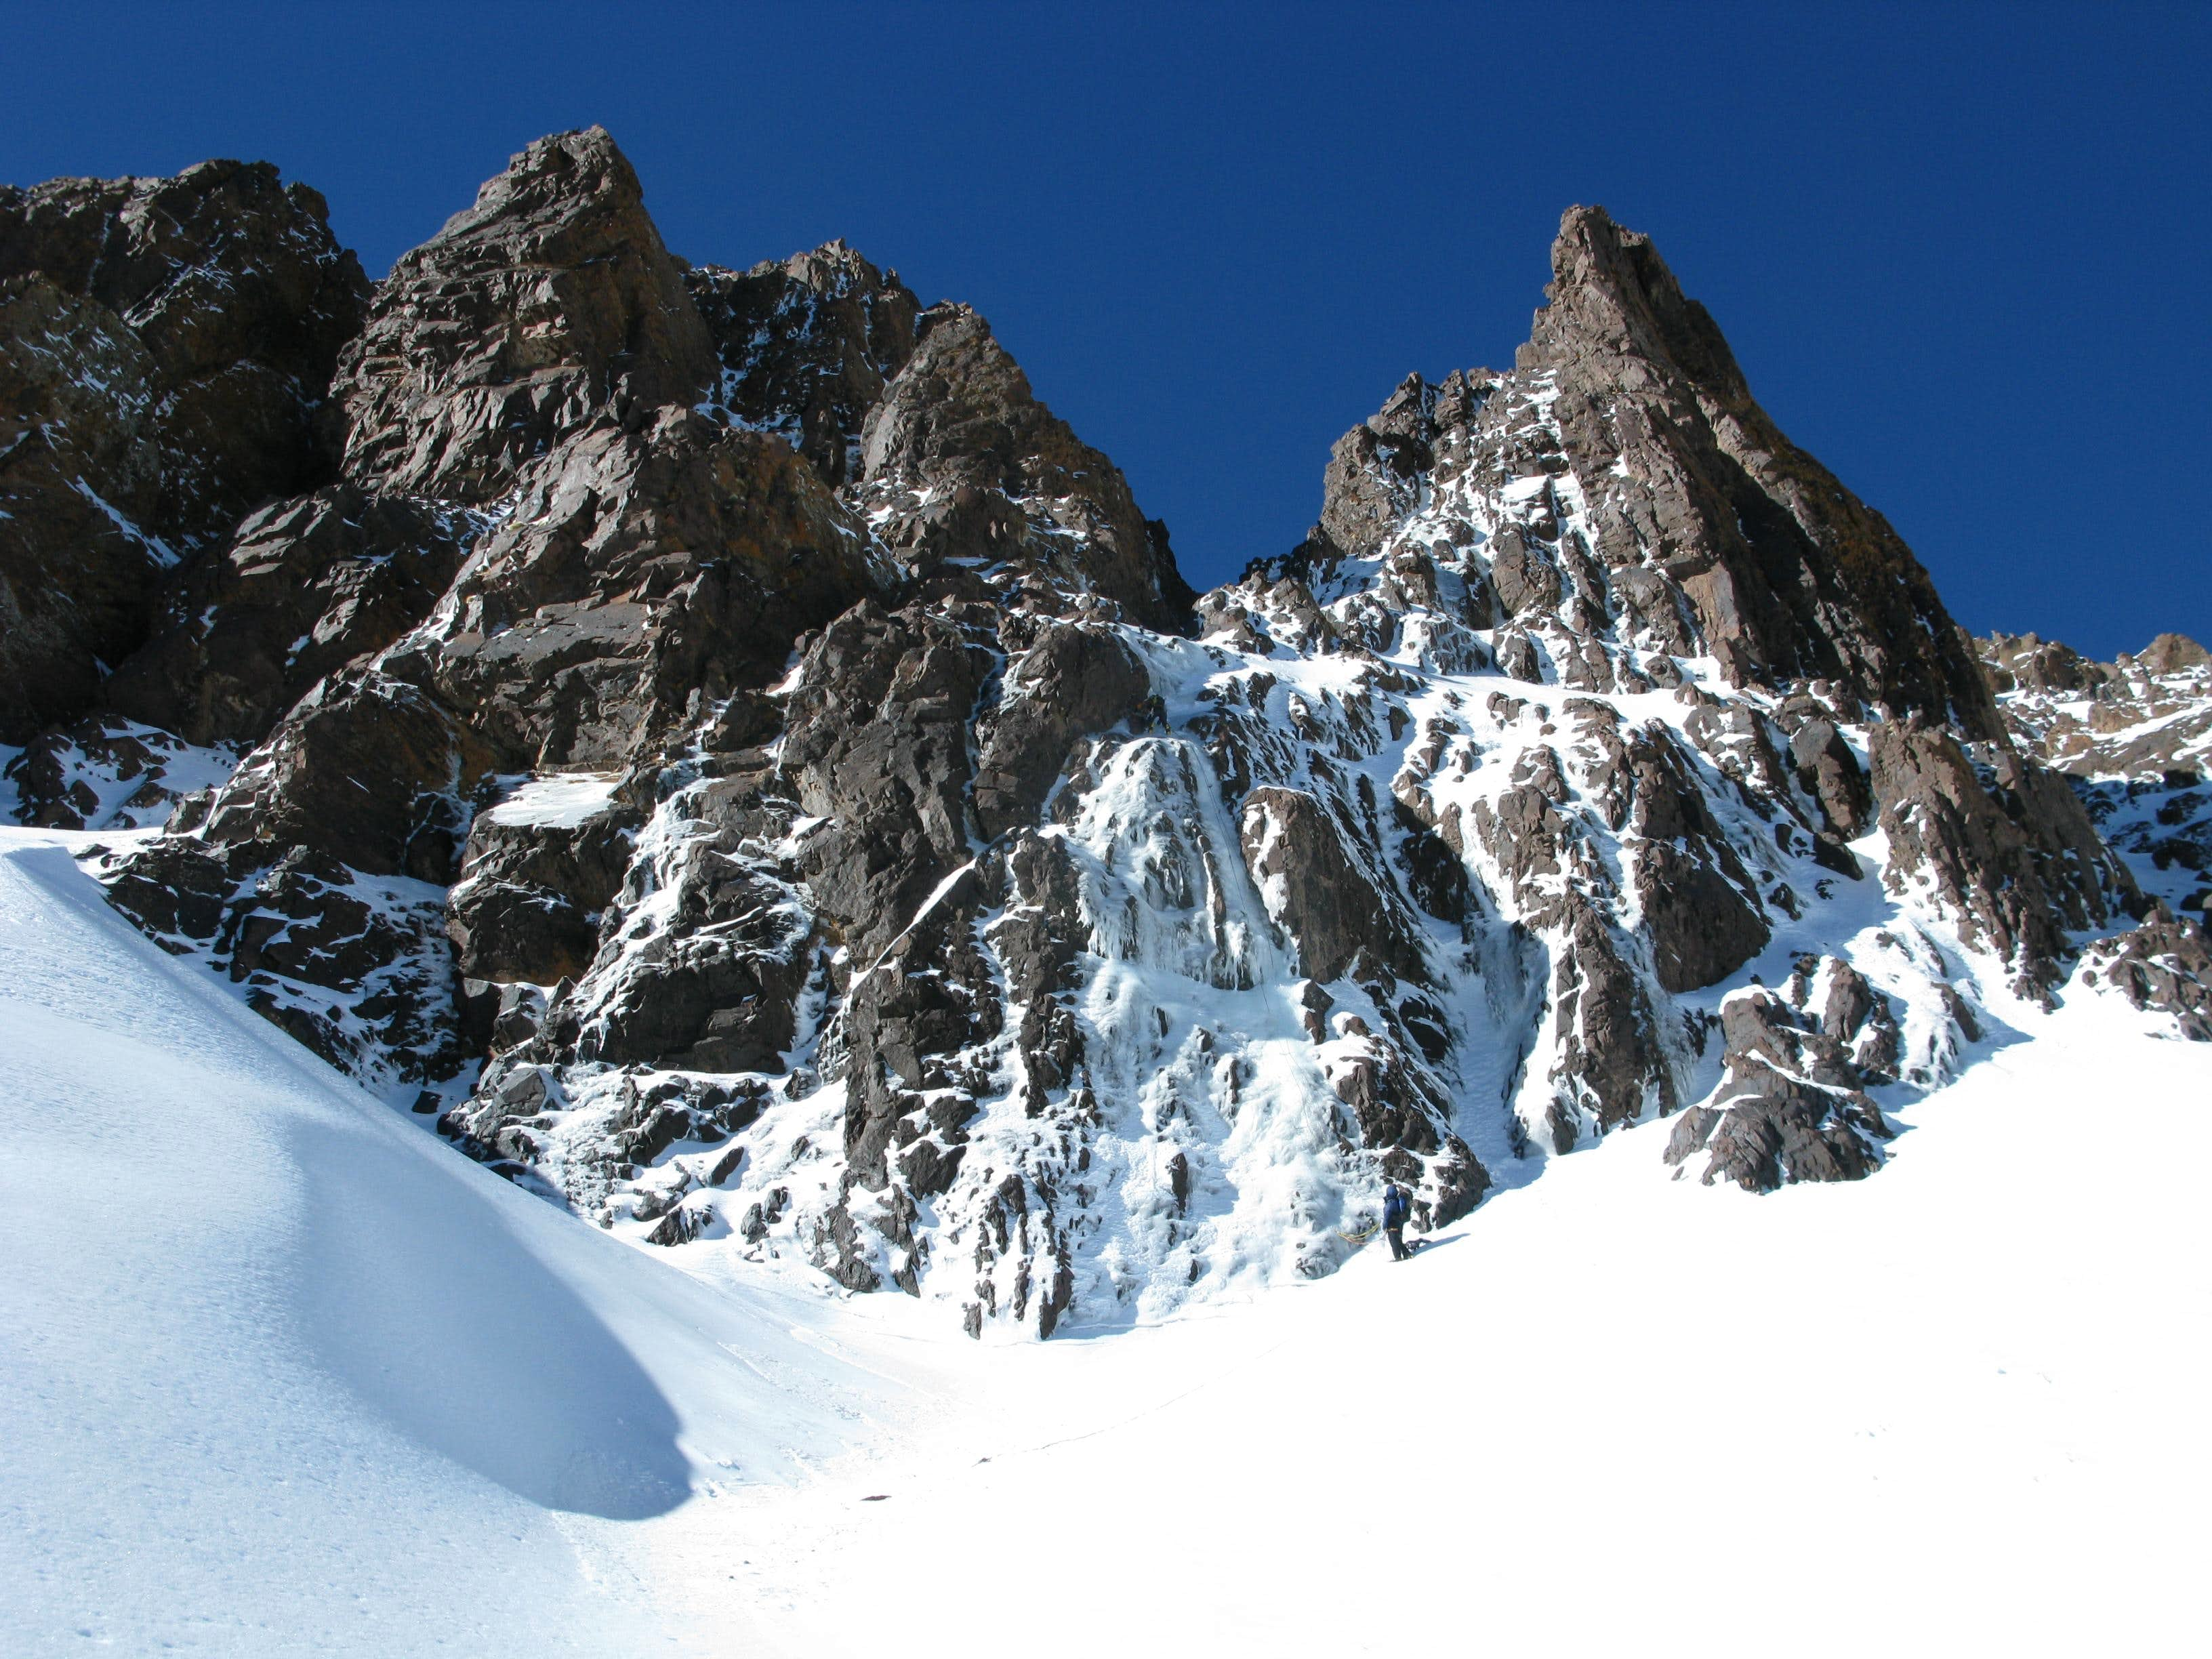 Toubkal Winter Climbing